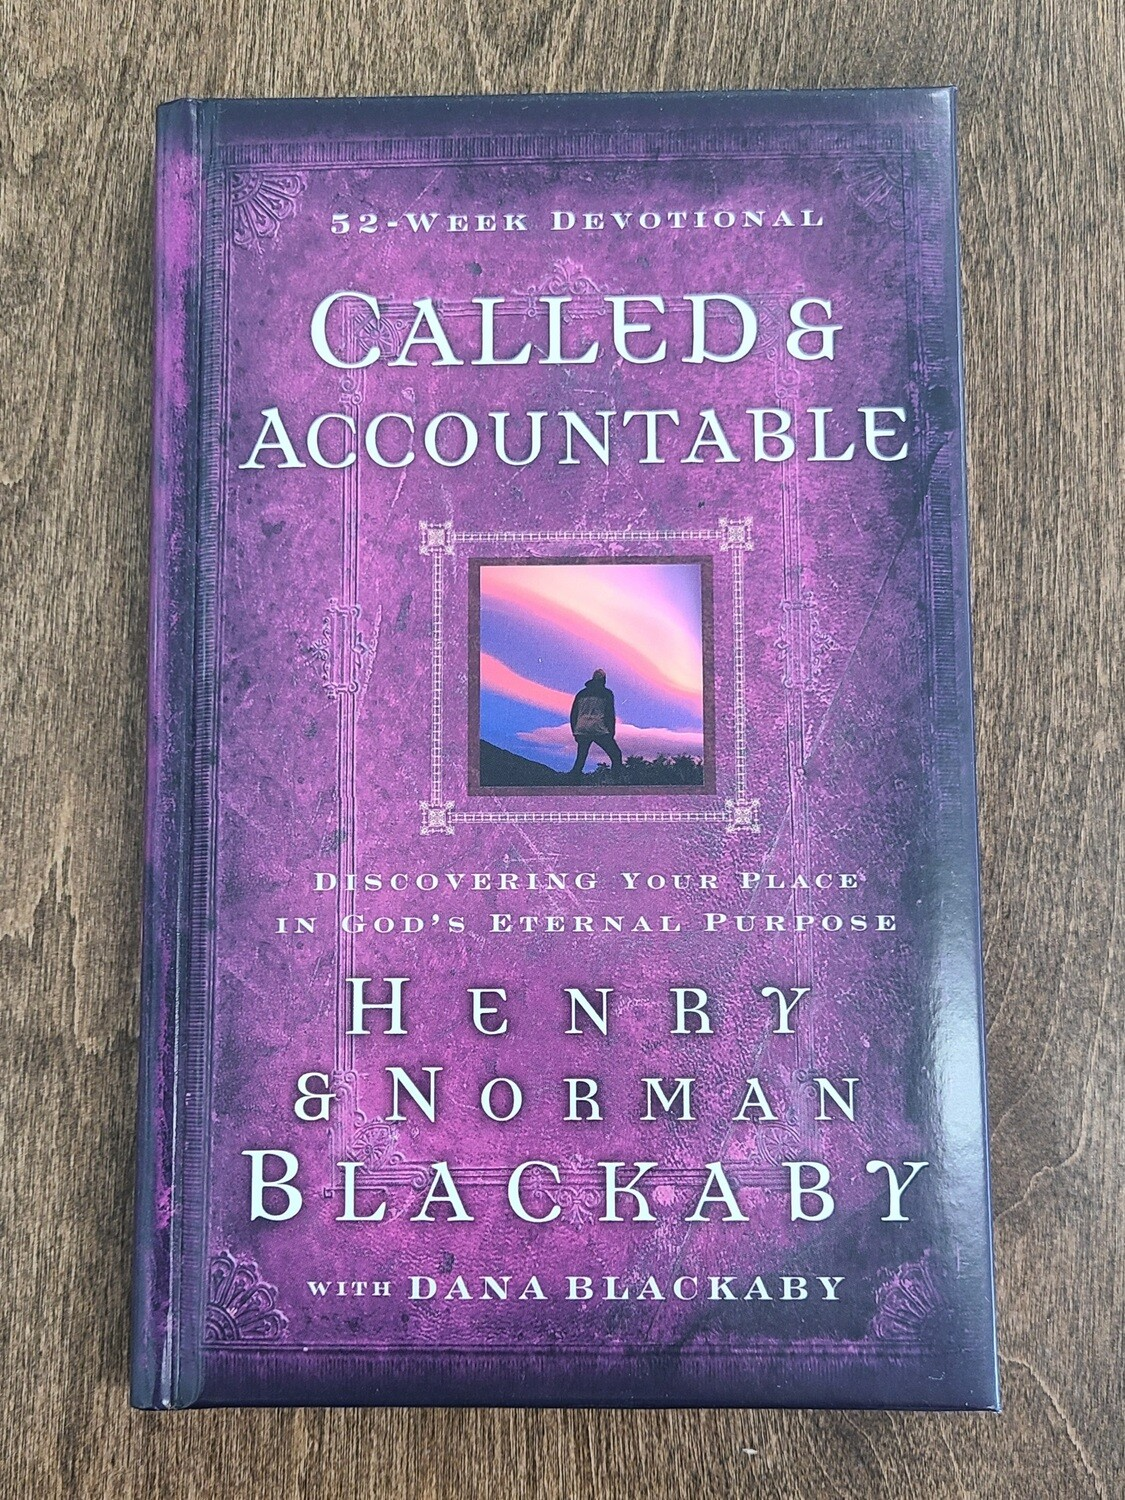 Called and Accountable: 52-Week Devotional by Henry and Norman Blackaby